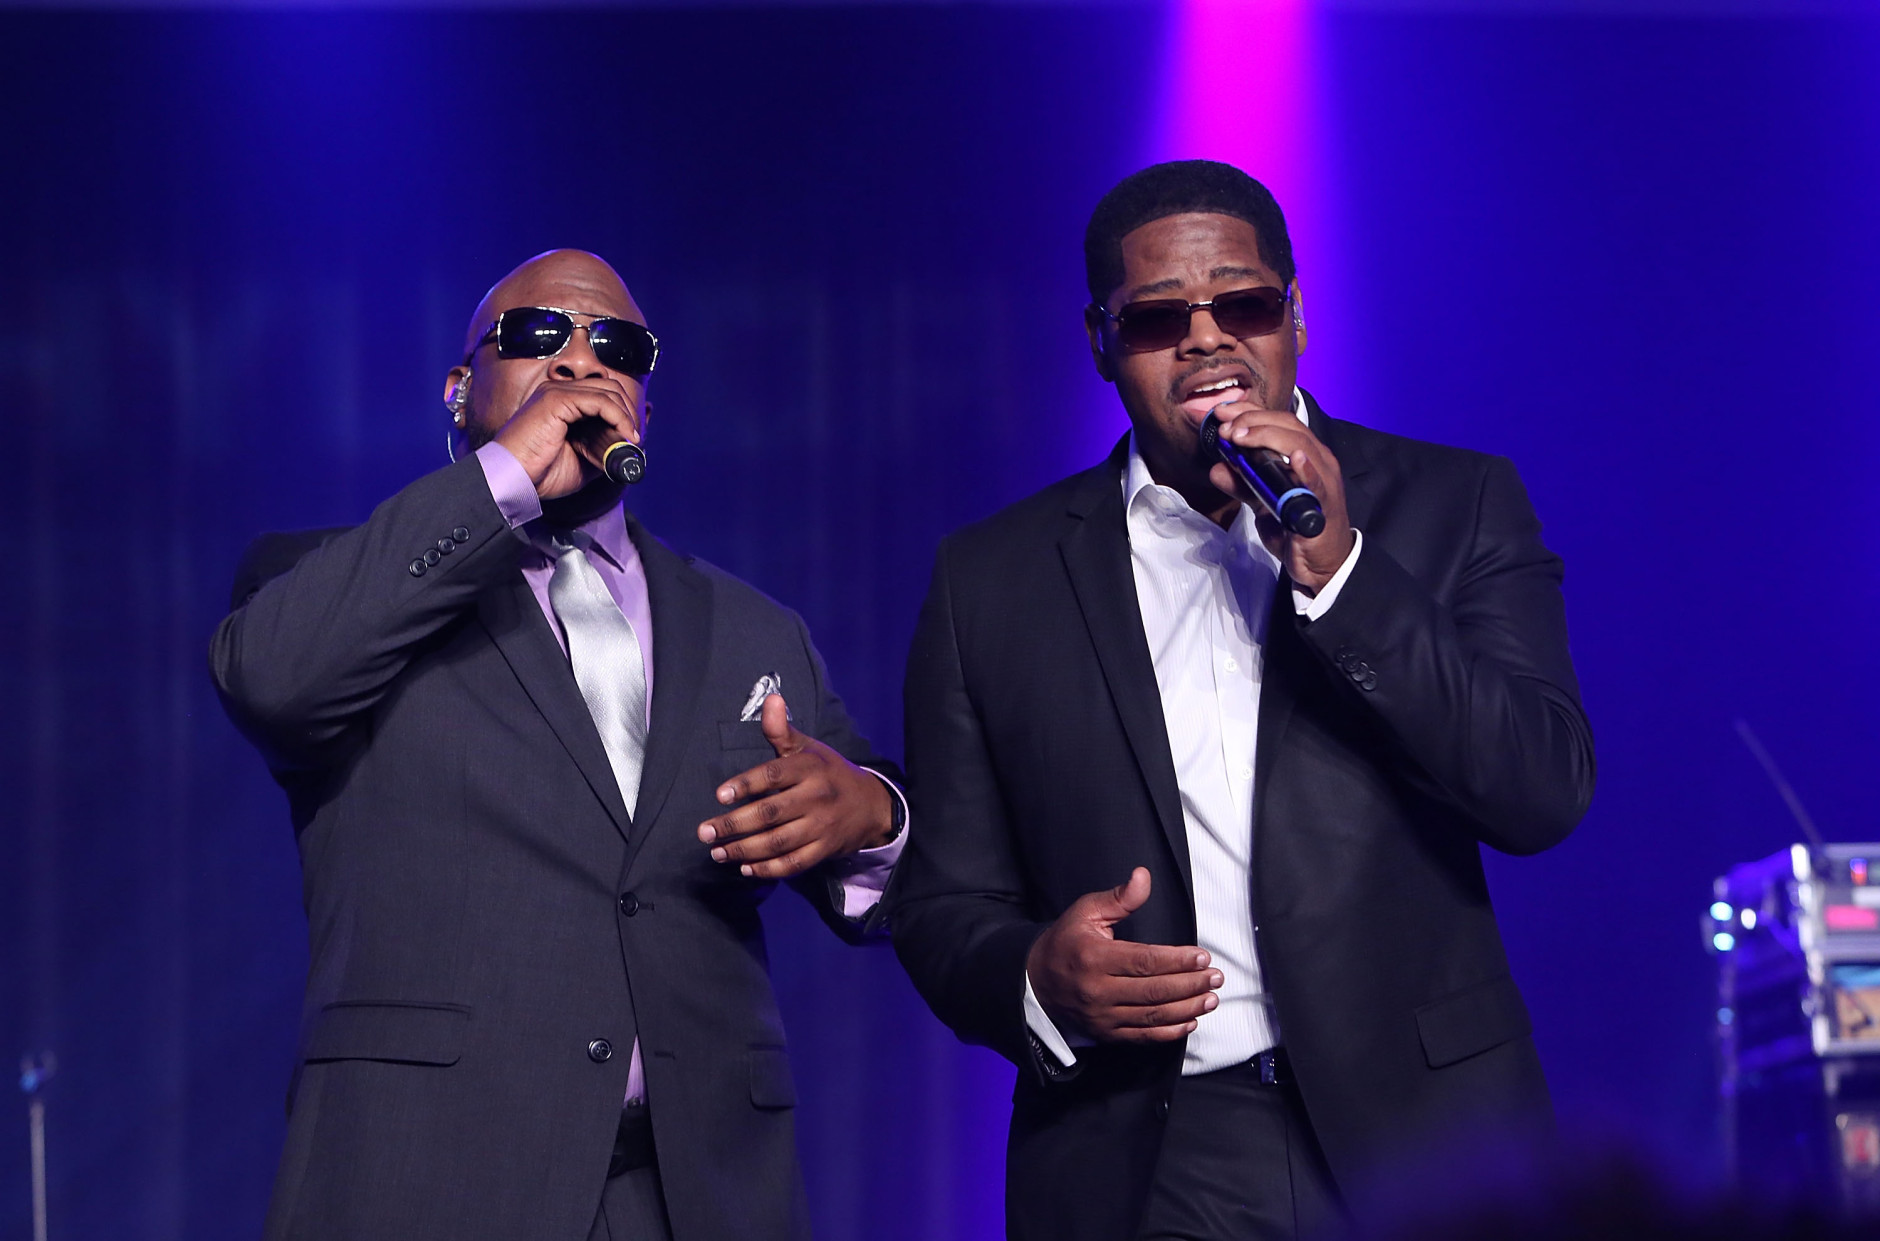 PASADENA, CA - FEBRUARY 05: Singers Wanya Morris and Nathan Morris of Boyz II Men perform during the 47th NAACP Image Awards Presented By TV One After Party at the Pasadena Civic Auditorium on February 5, 2016 in Pasadena, California.  (Photo by Jesse Grant/Getty Images for NAACP Image Awards)